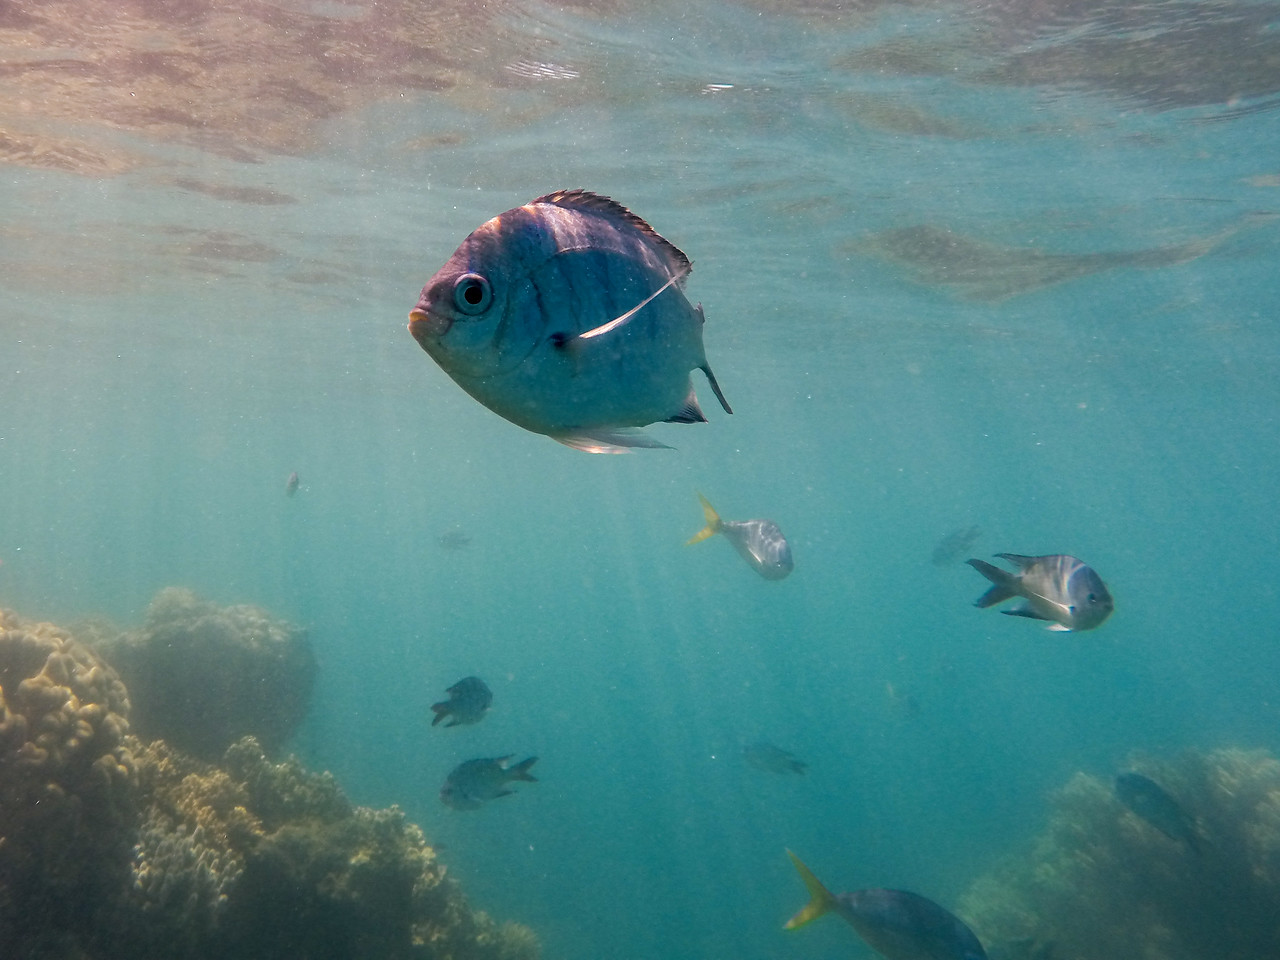 Snorkeling at the Whitsunday Islands